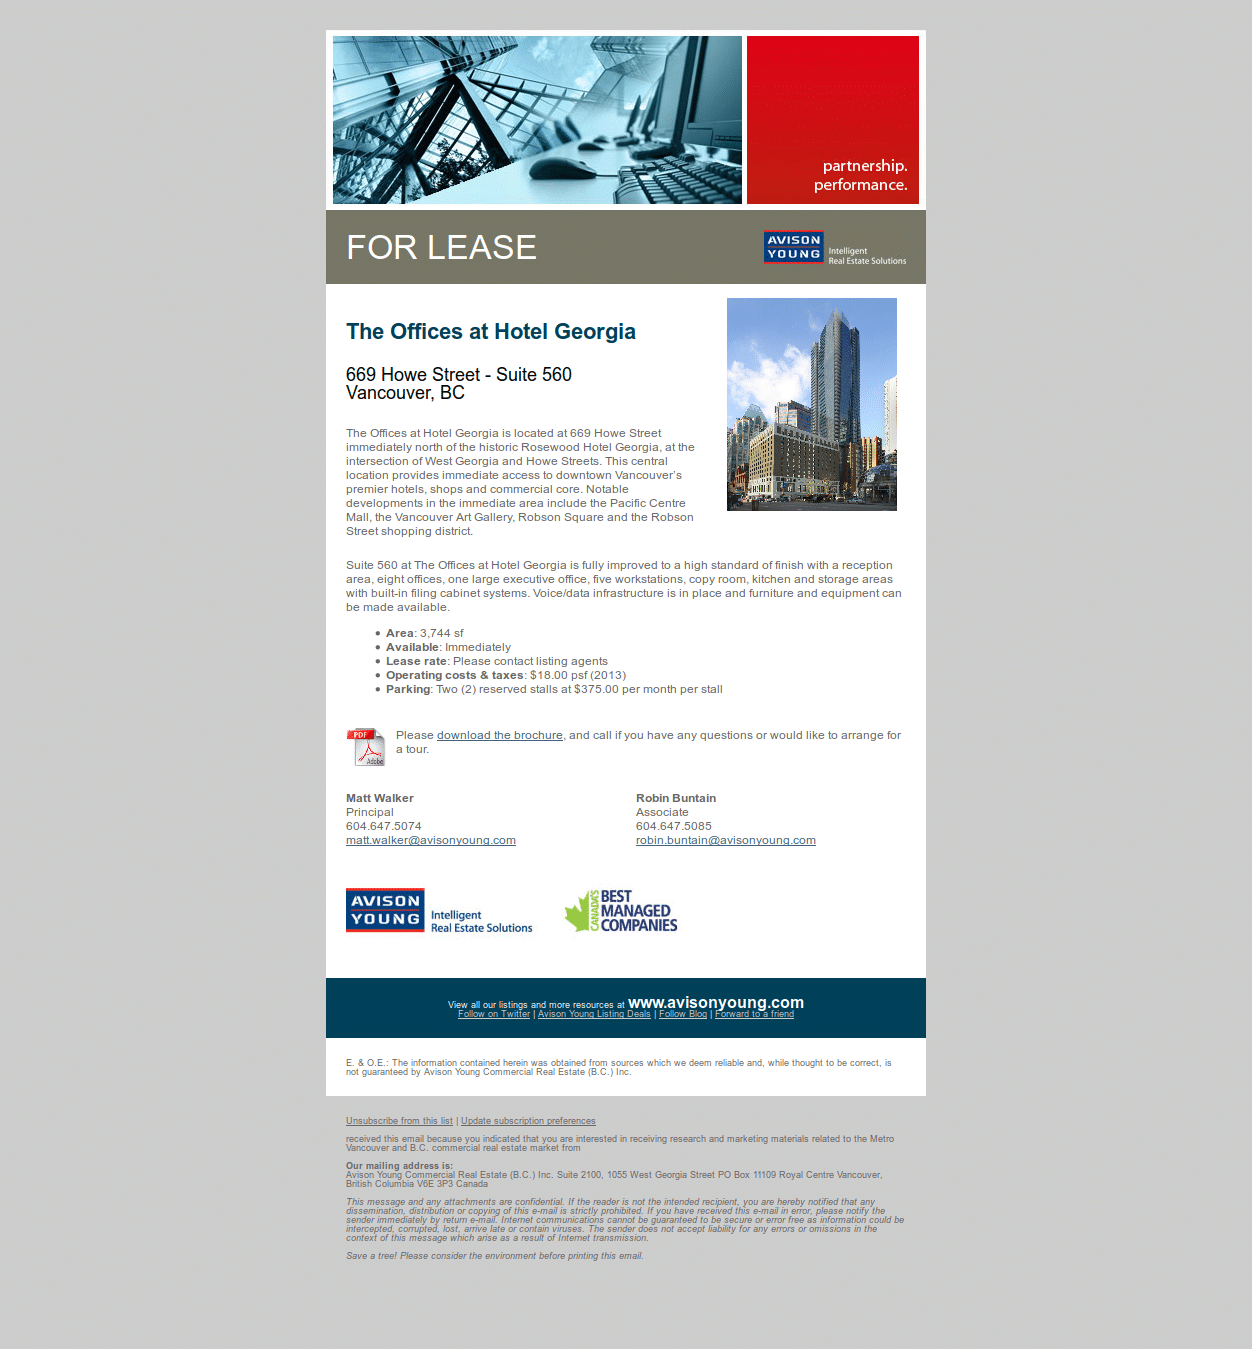 Email for a Vancouver office opportunity